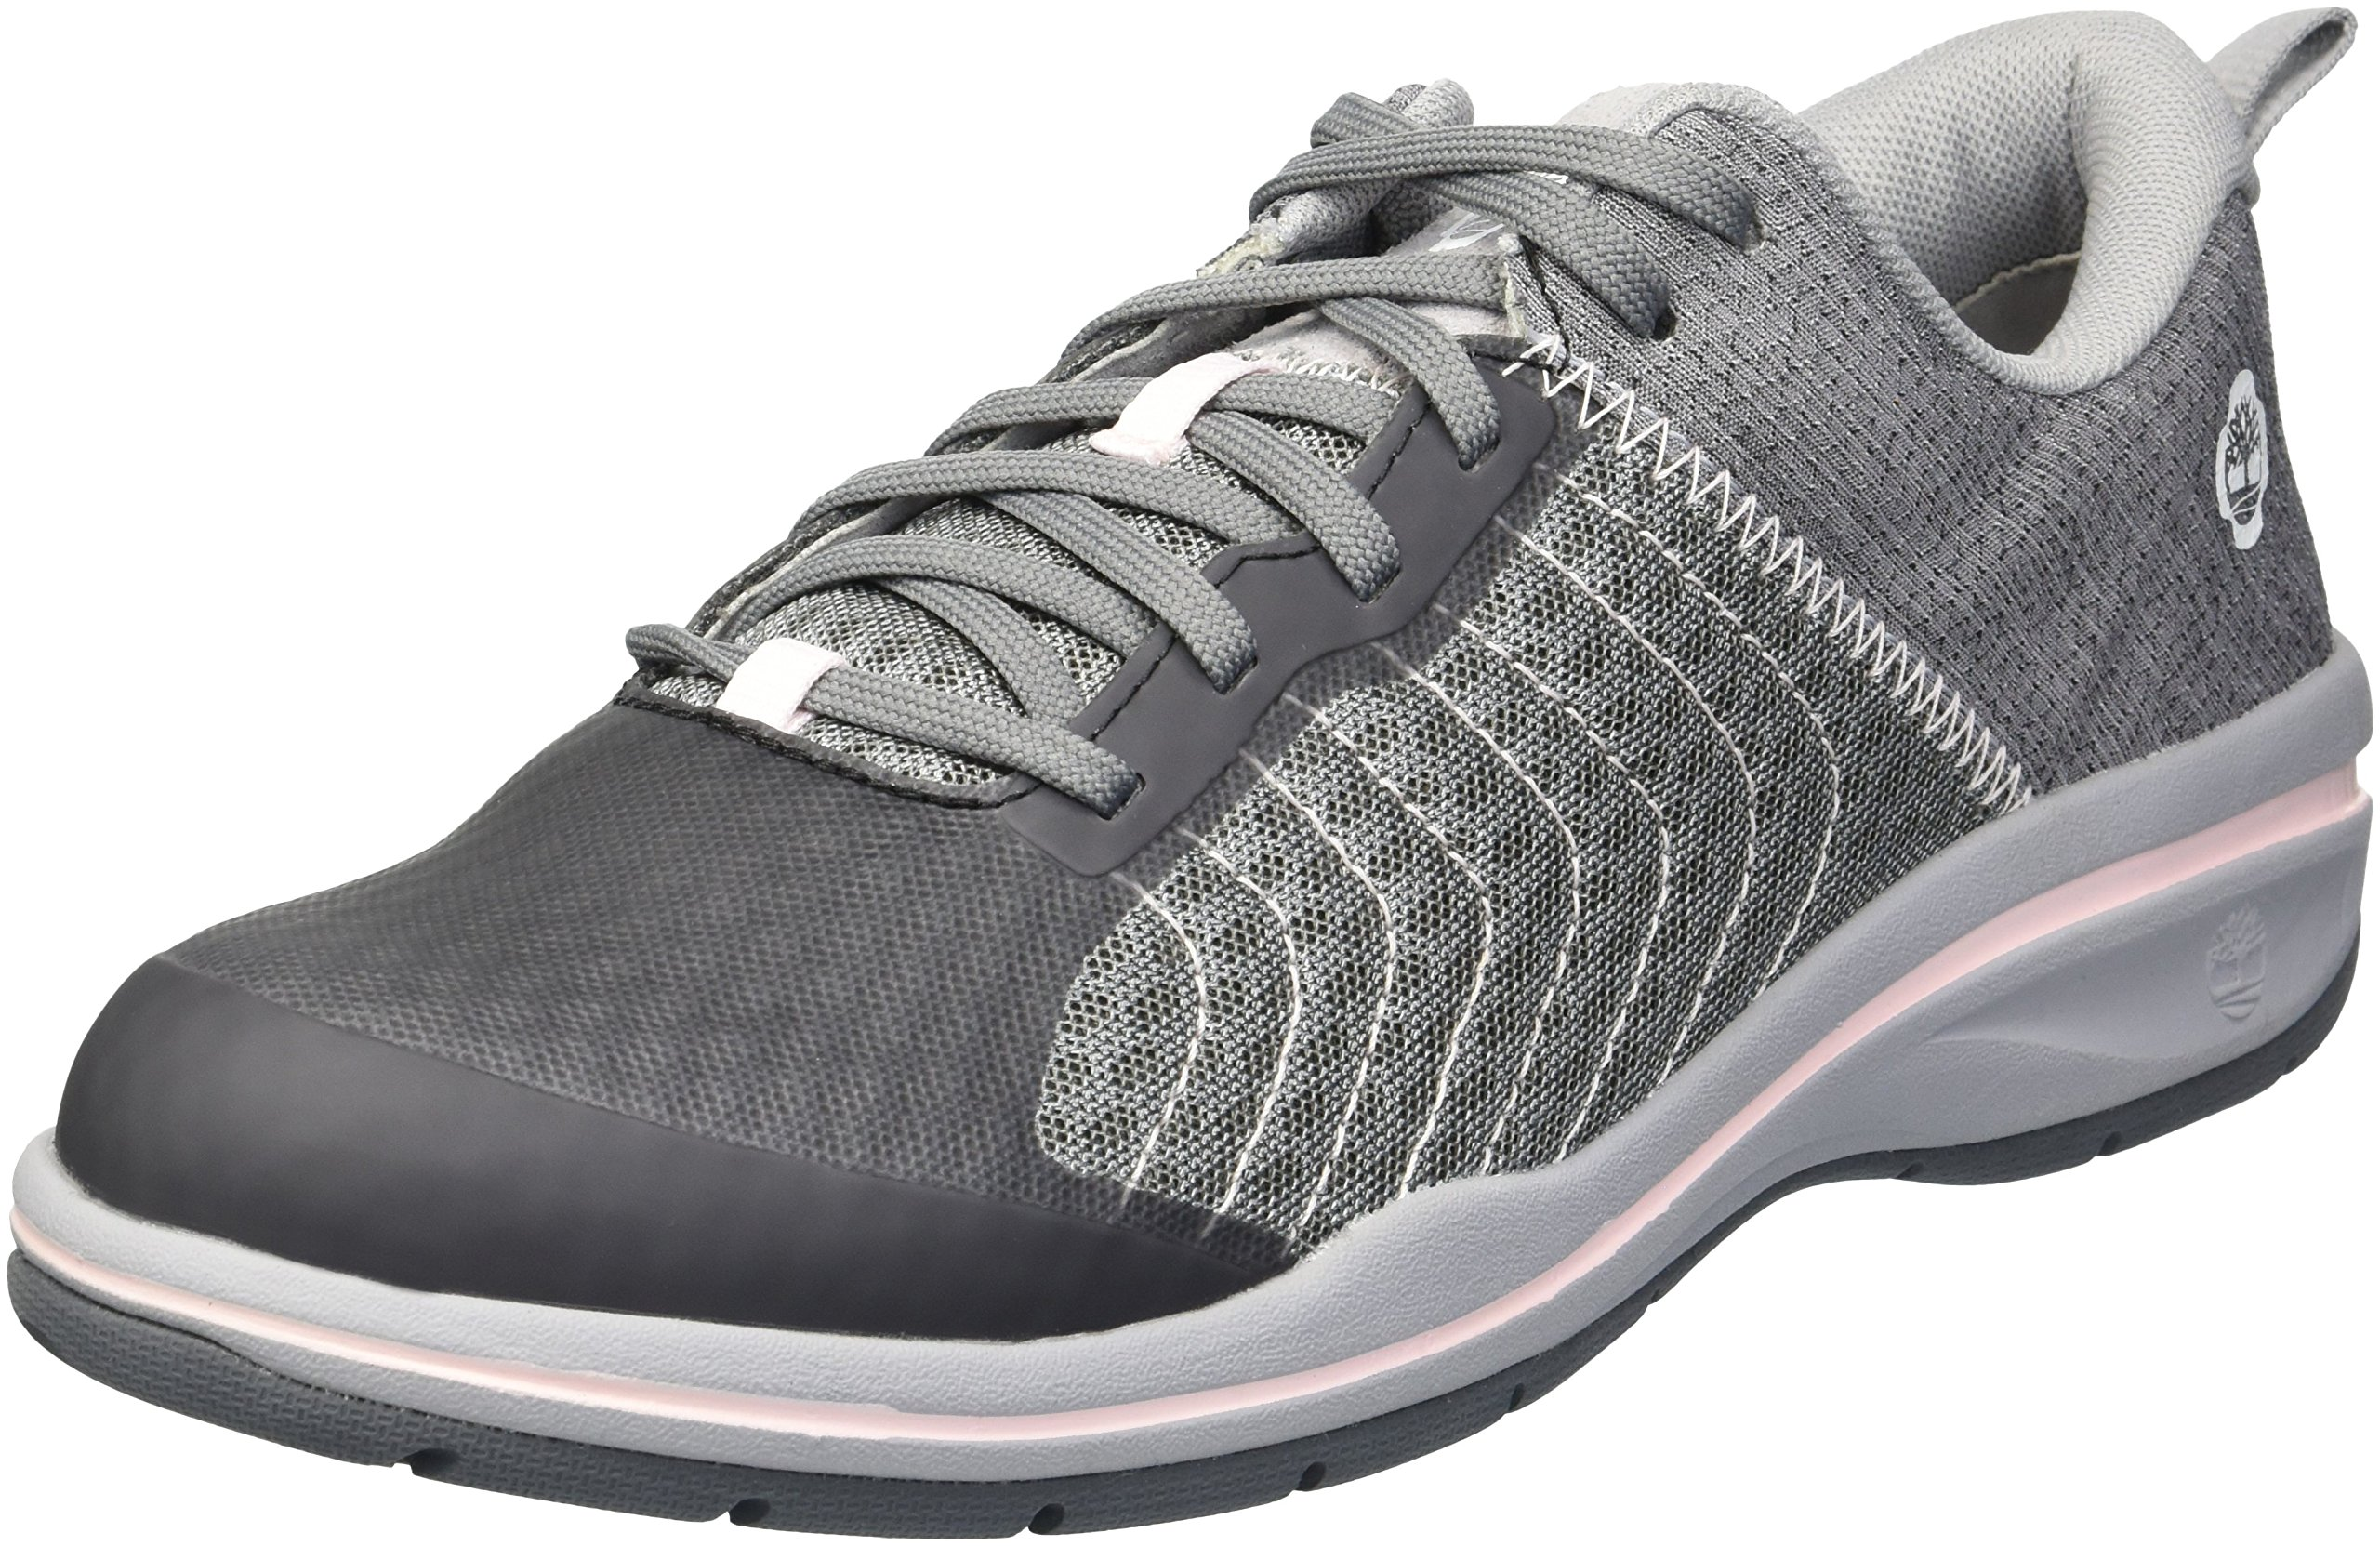 Timberland PRO Women's Healthcare Sport Soft Toe Health Care Professional Shoe, Grey, 9.5 M US